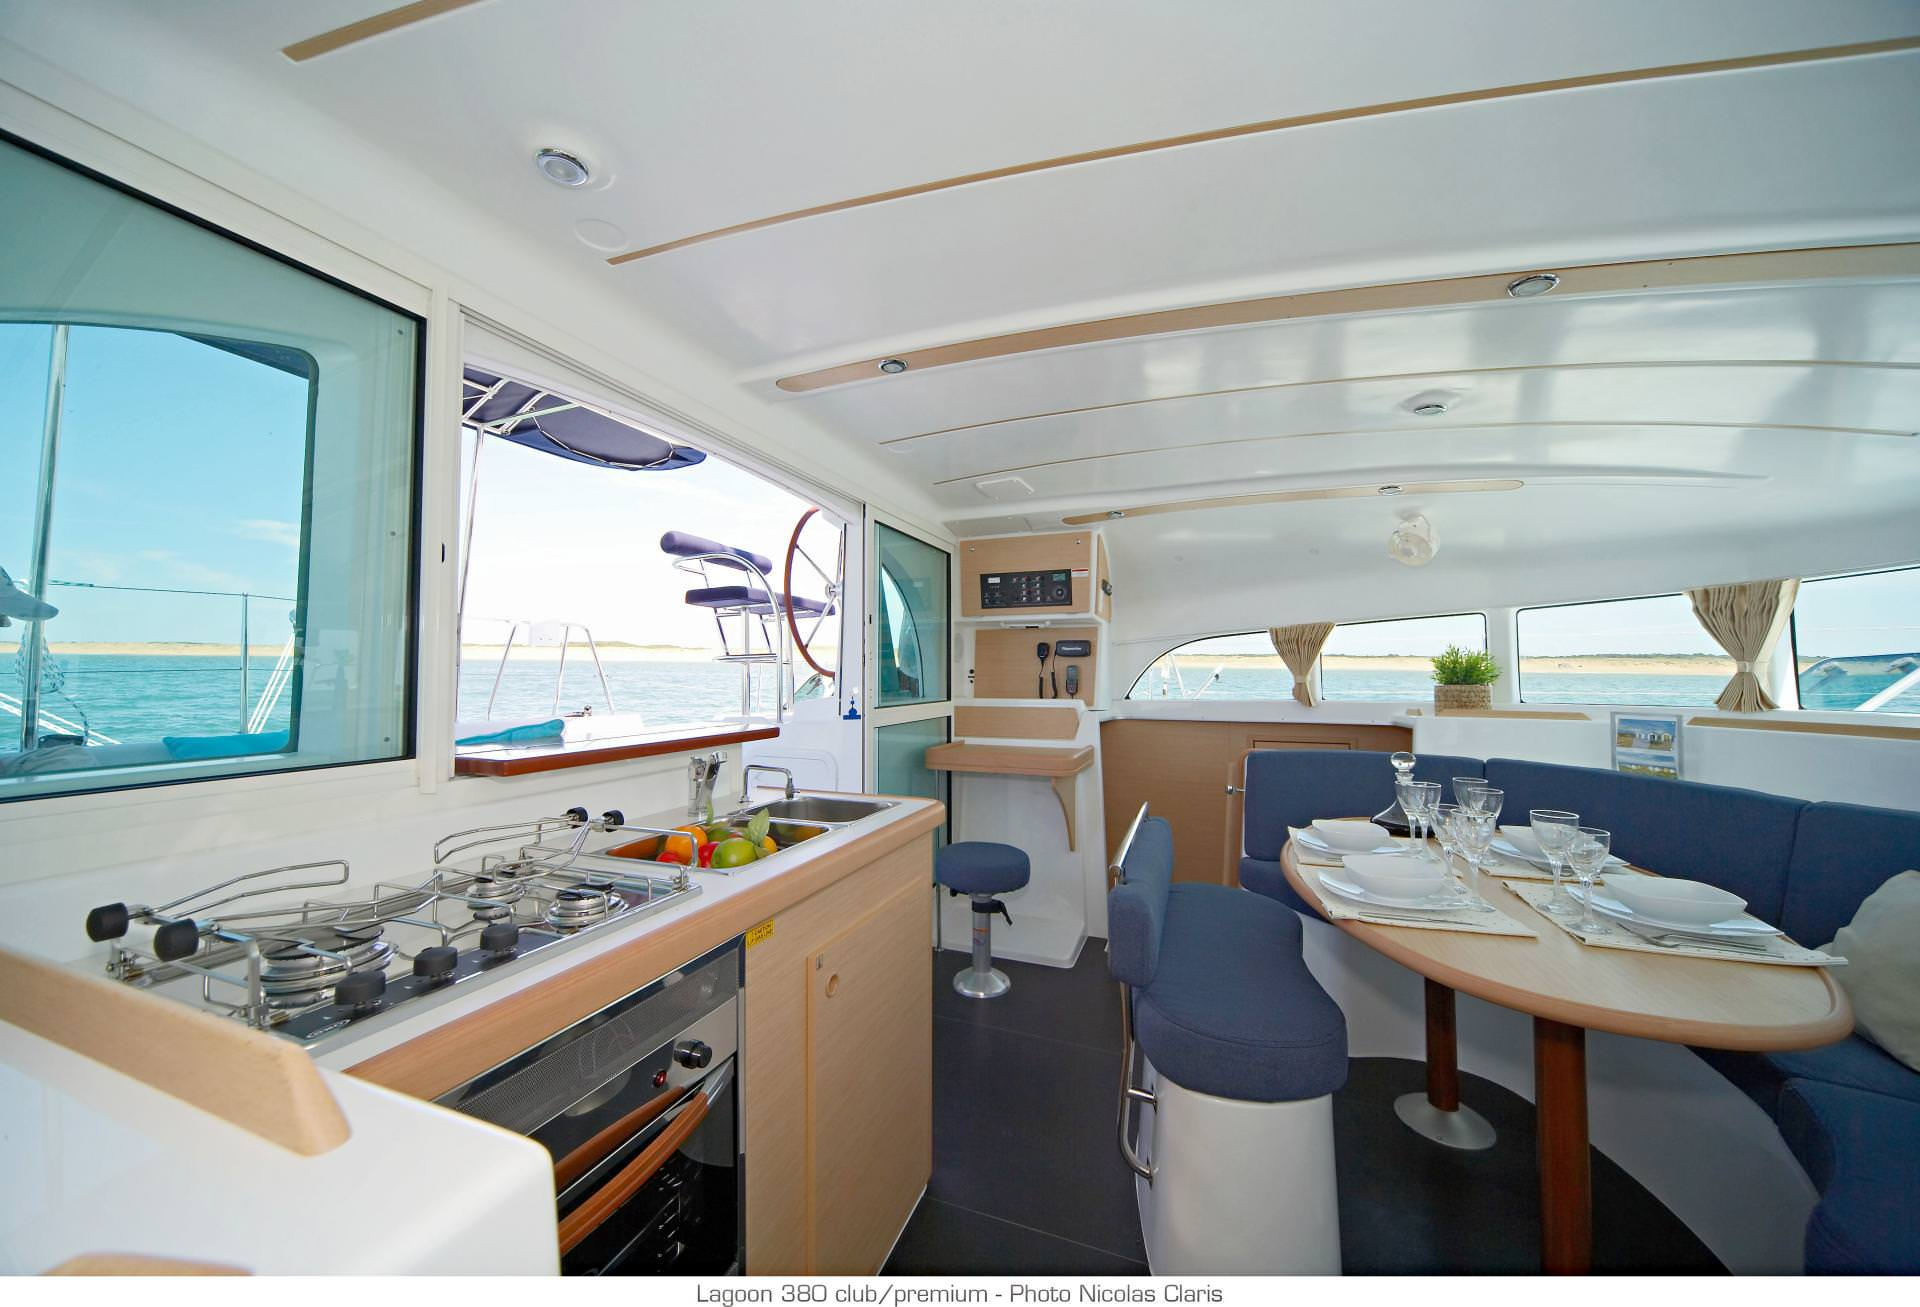 Spacious galley and salon